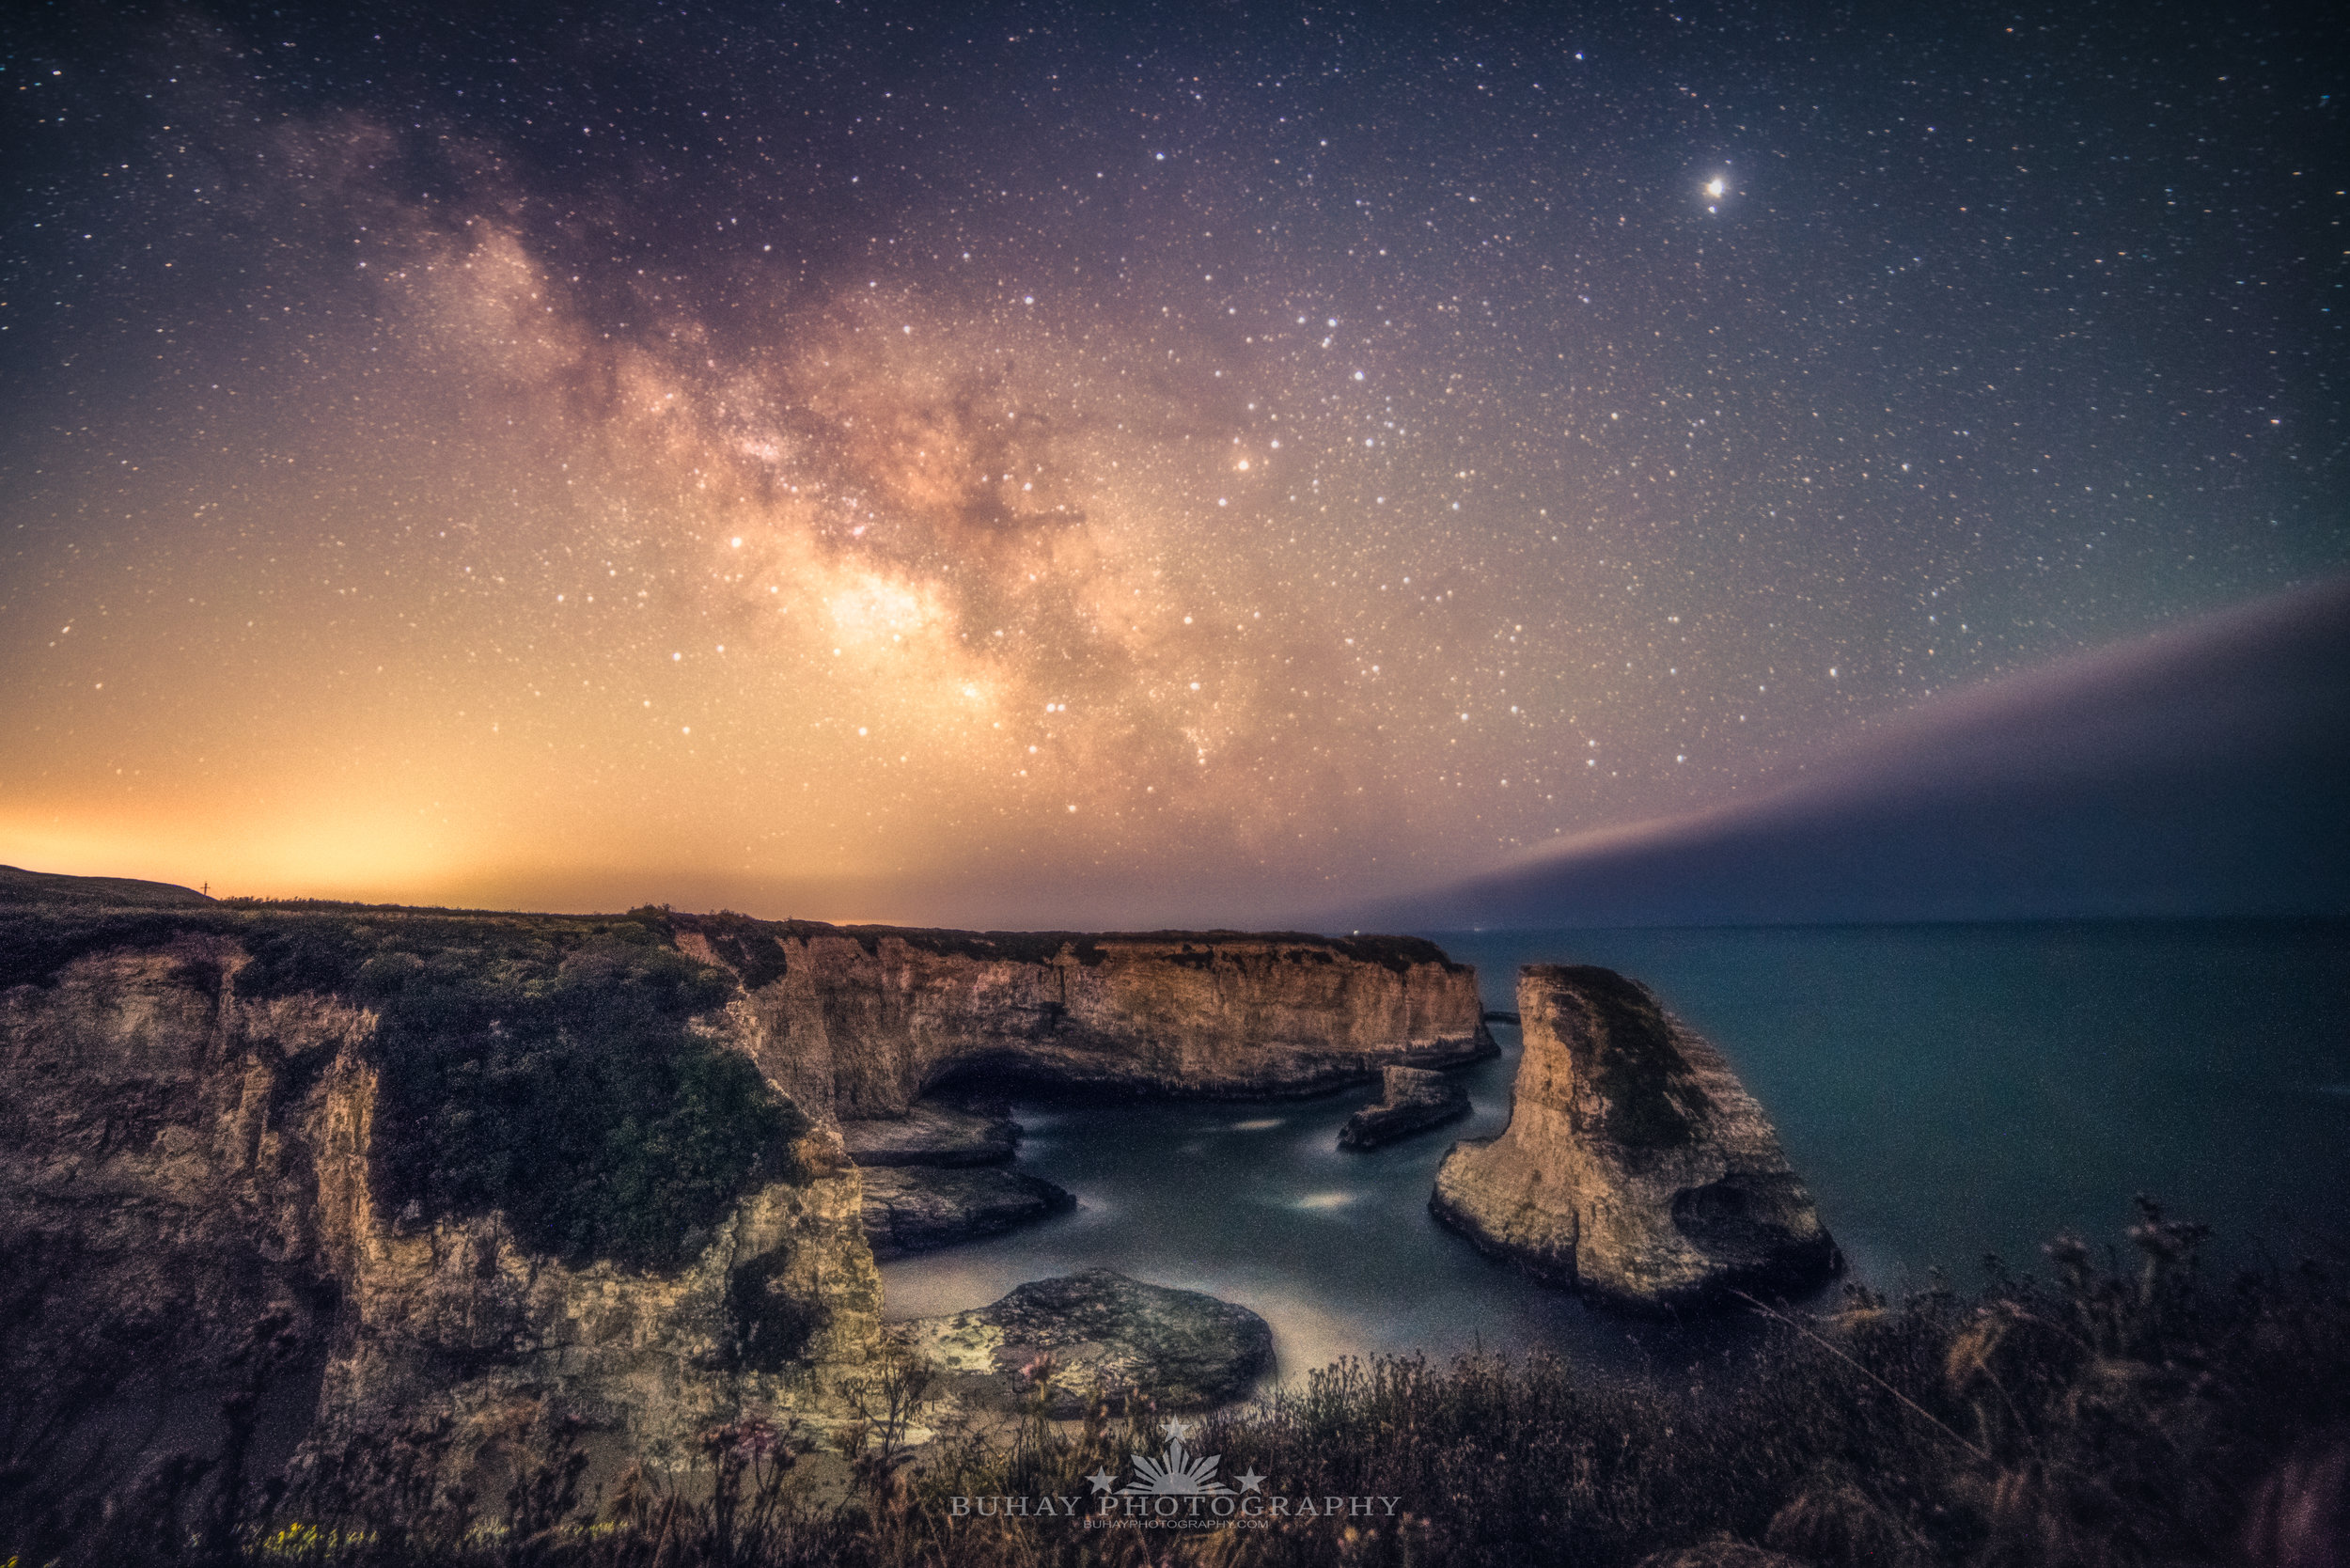 Shark Fin Cove Milky Way 2018